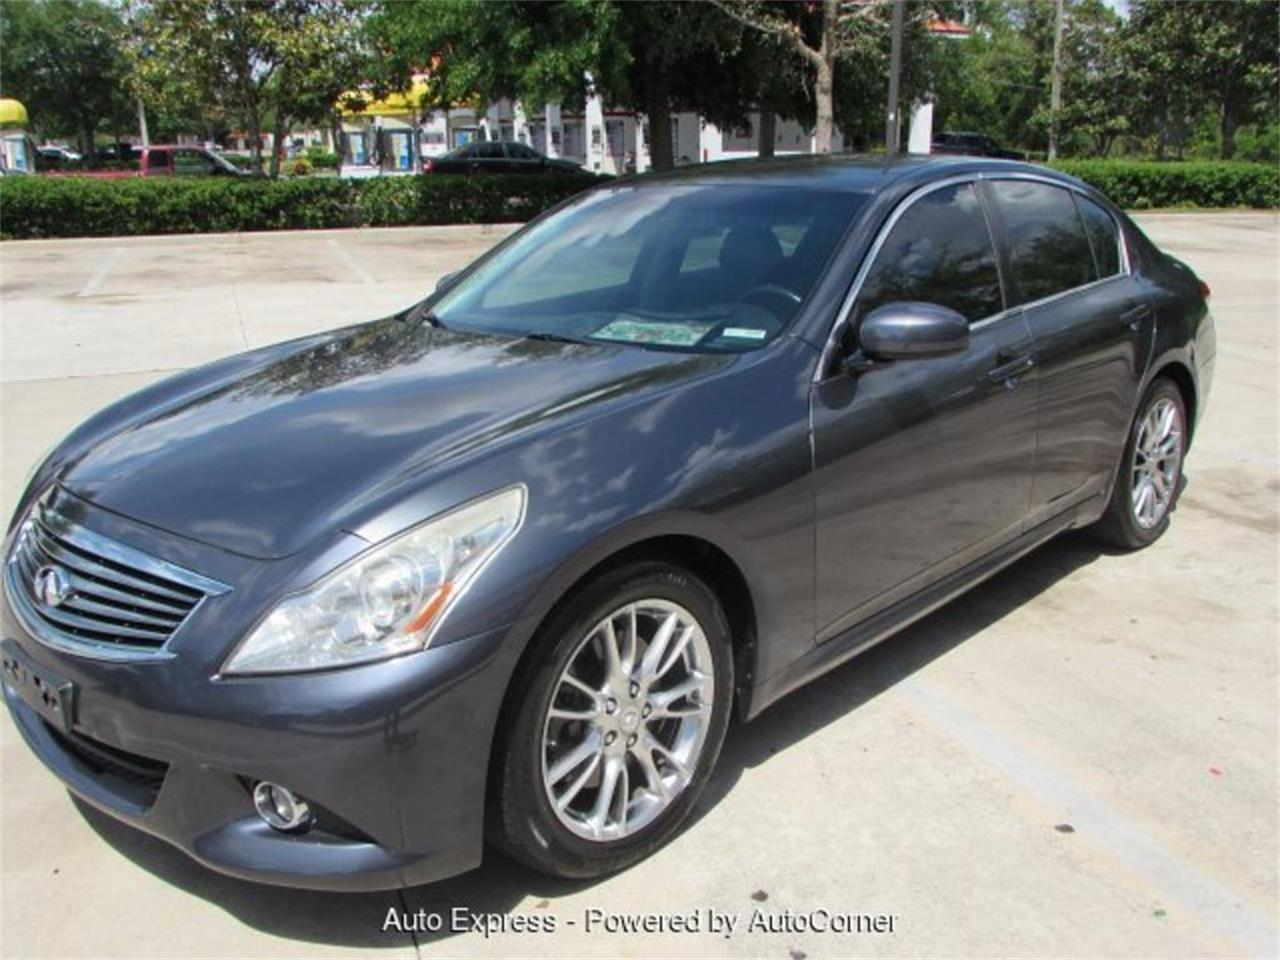 Large Picture of '08 Infiniti G35 located in Orlando Florida - $8,999.00 Offered by Auto Express - Q29A